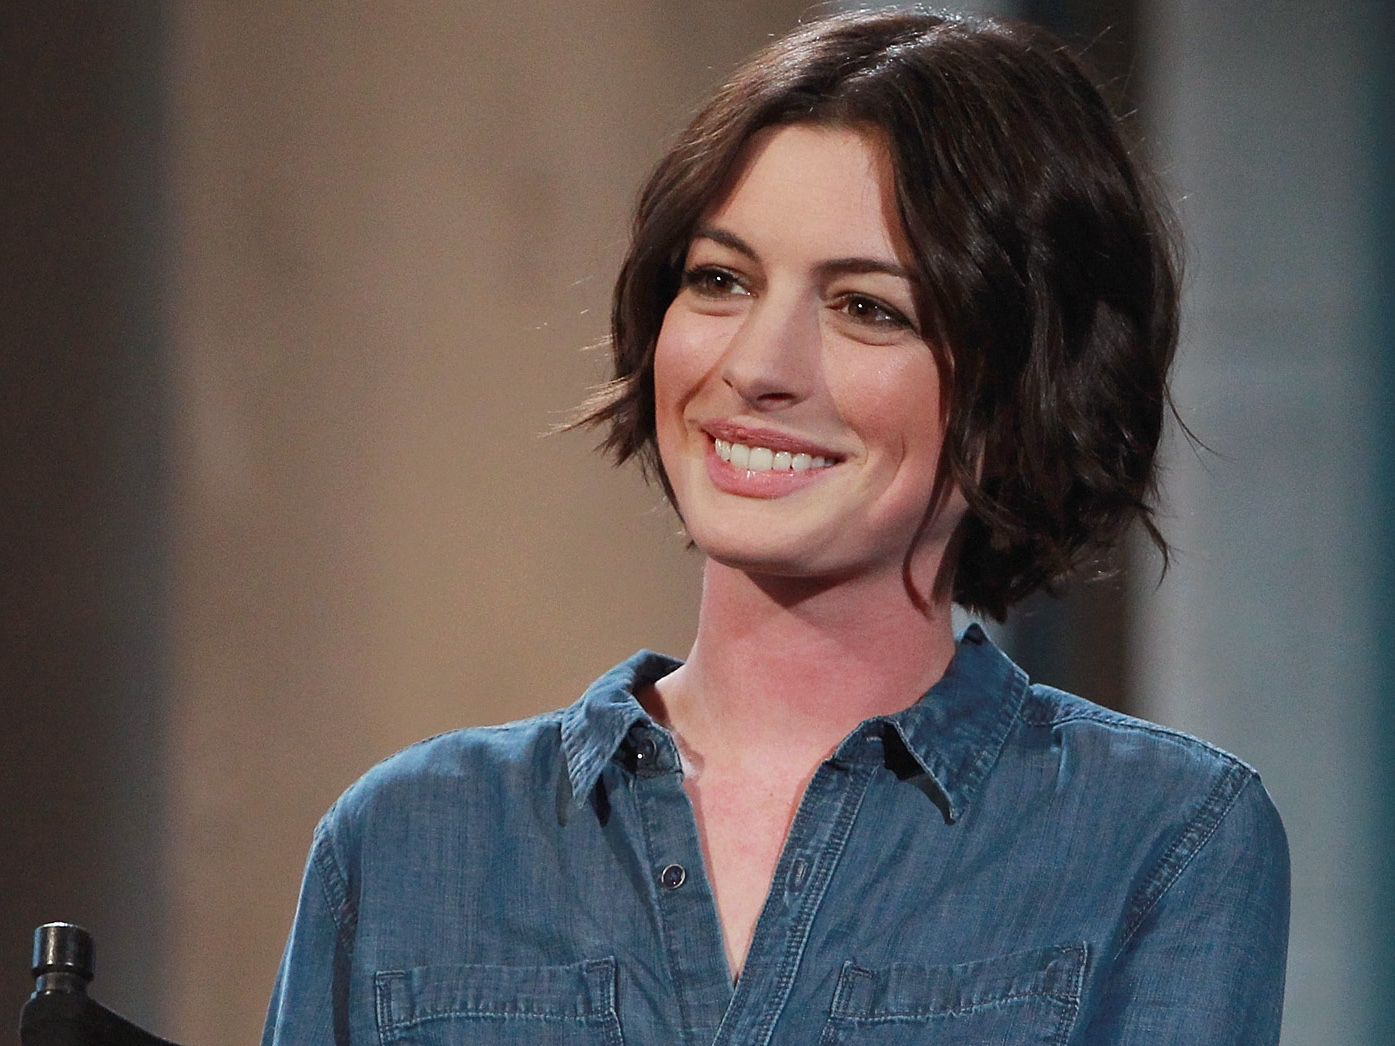 The Three Types Of Anne Hathaway Movies | FiveThirtyEight